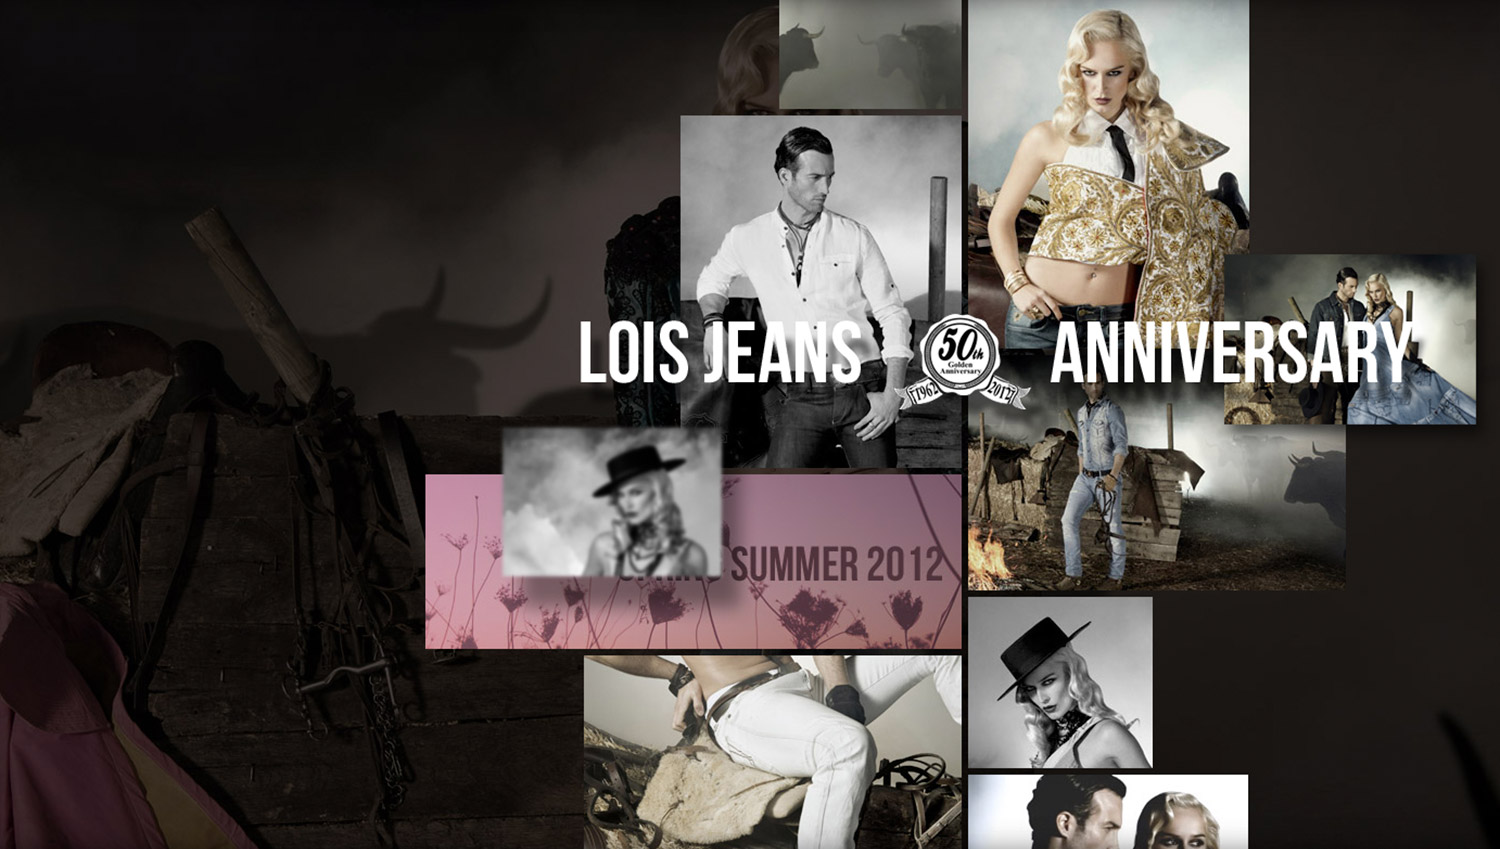 50th Anniversary / SS 2012